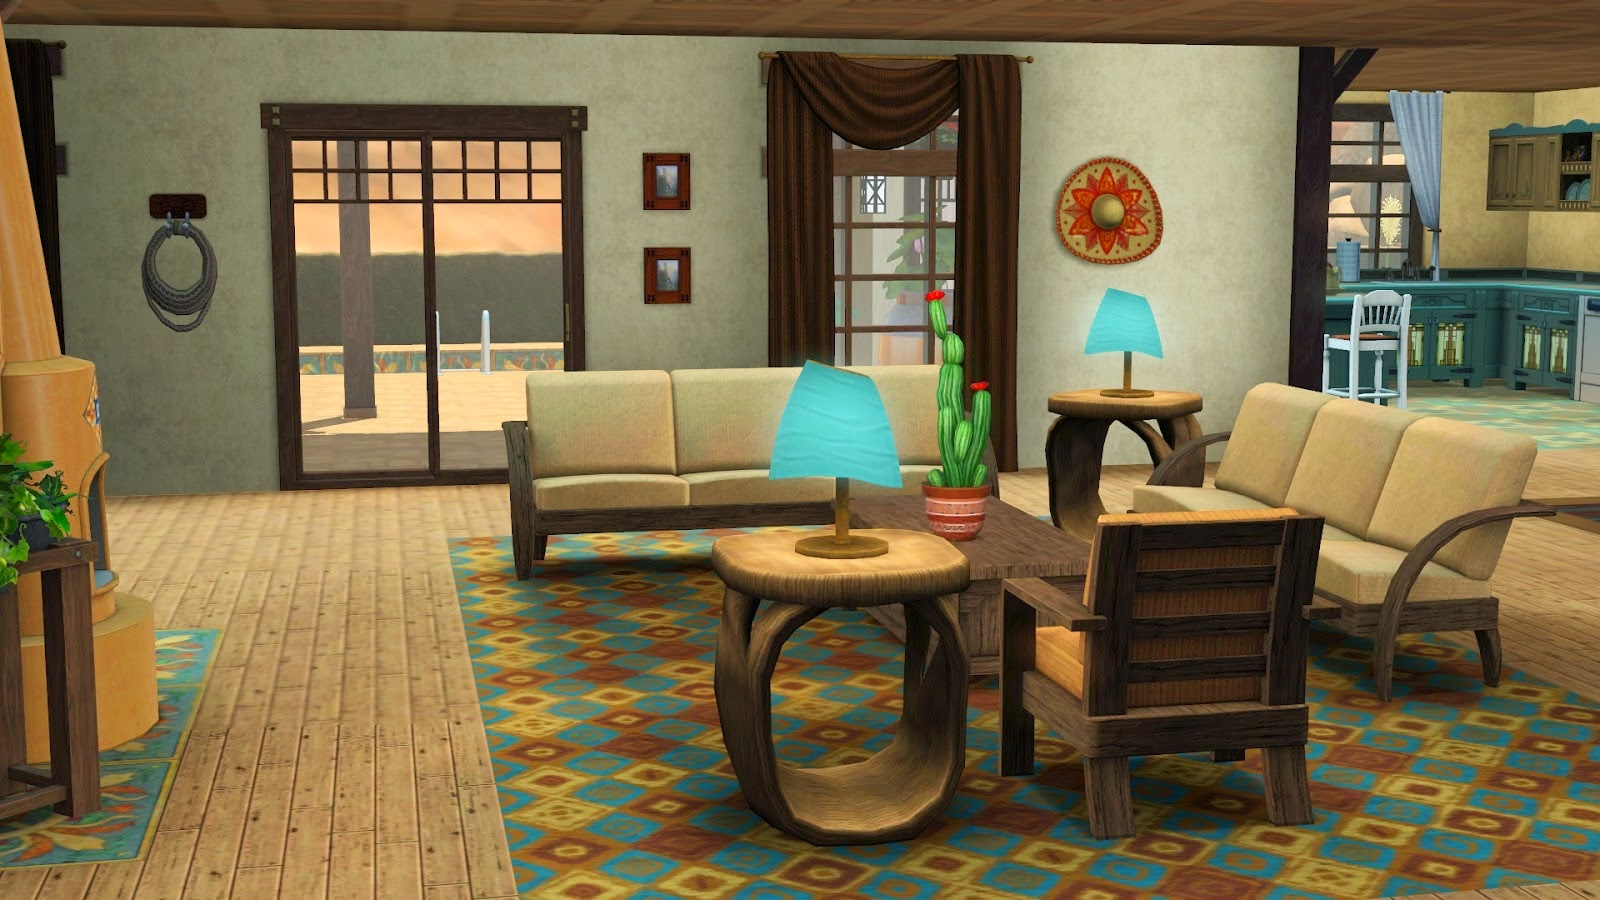 My Sims 3 Blog: Santa Fe Sunrise by Ruth Kay